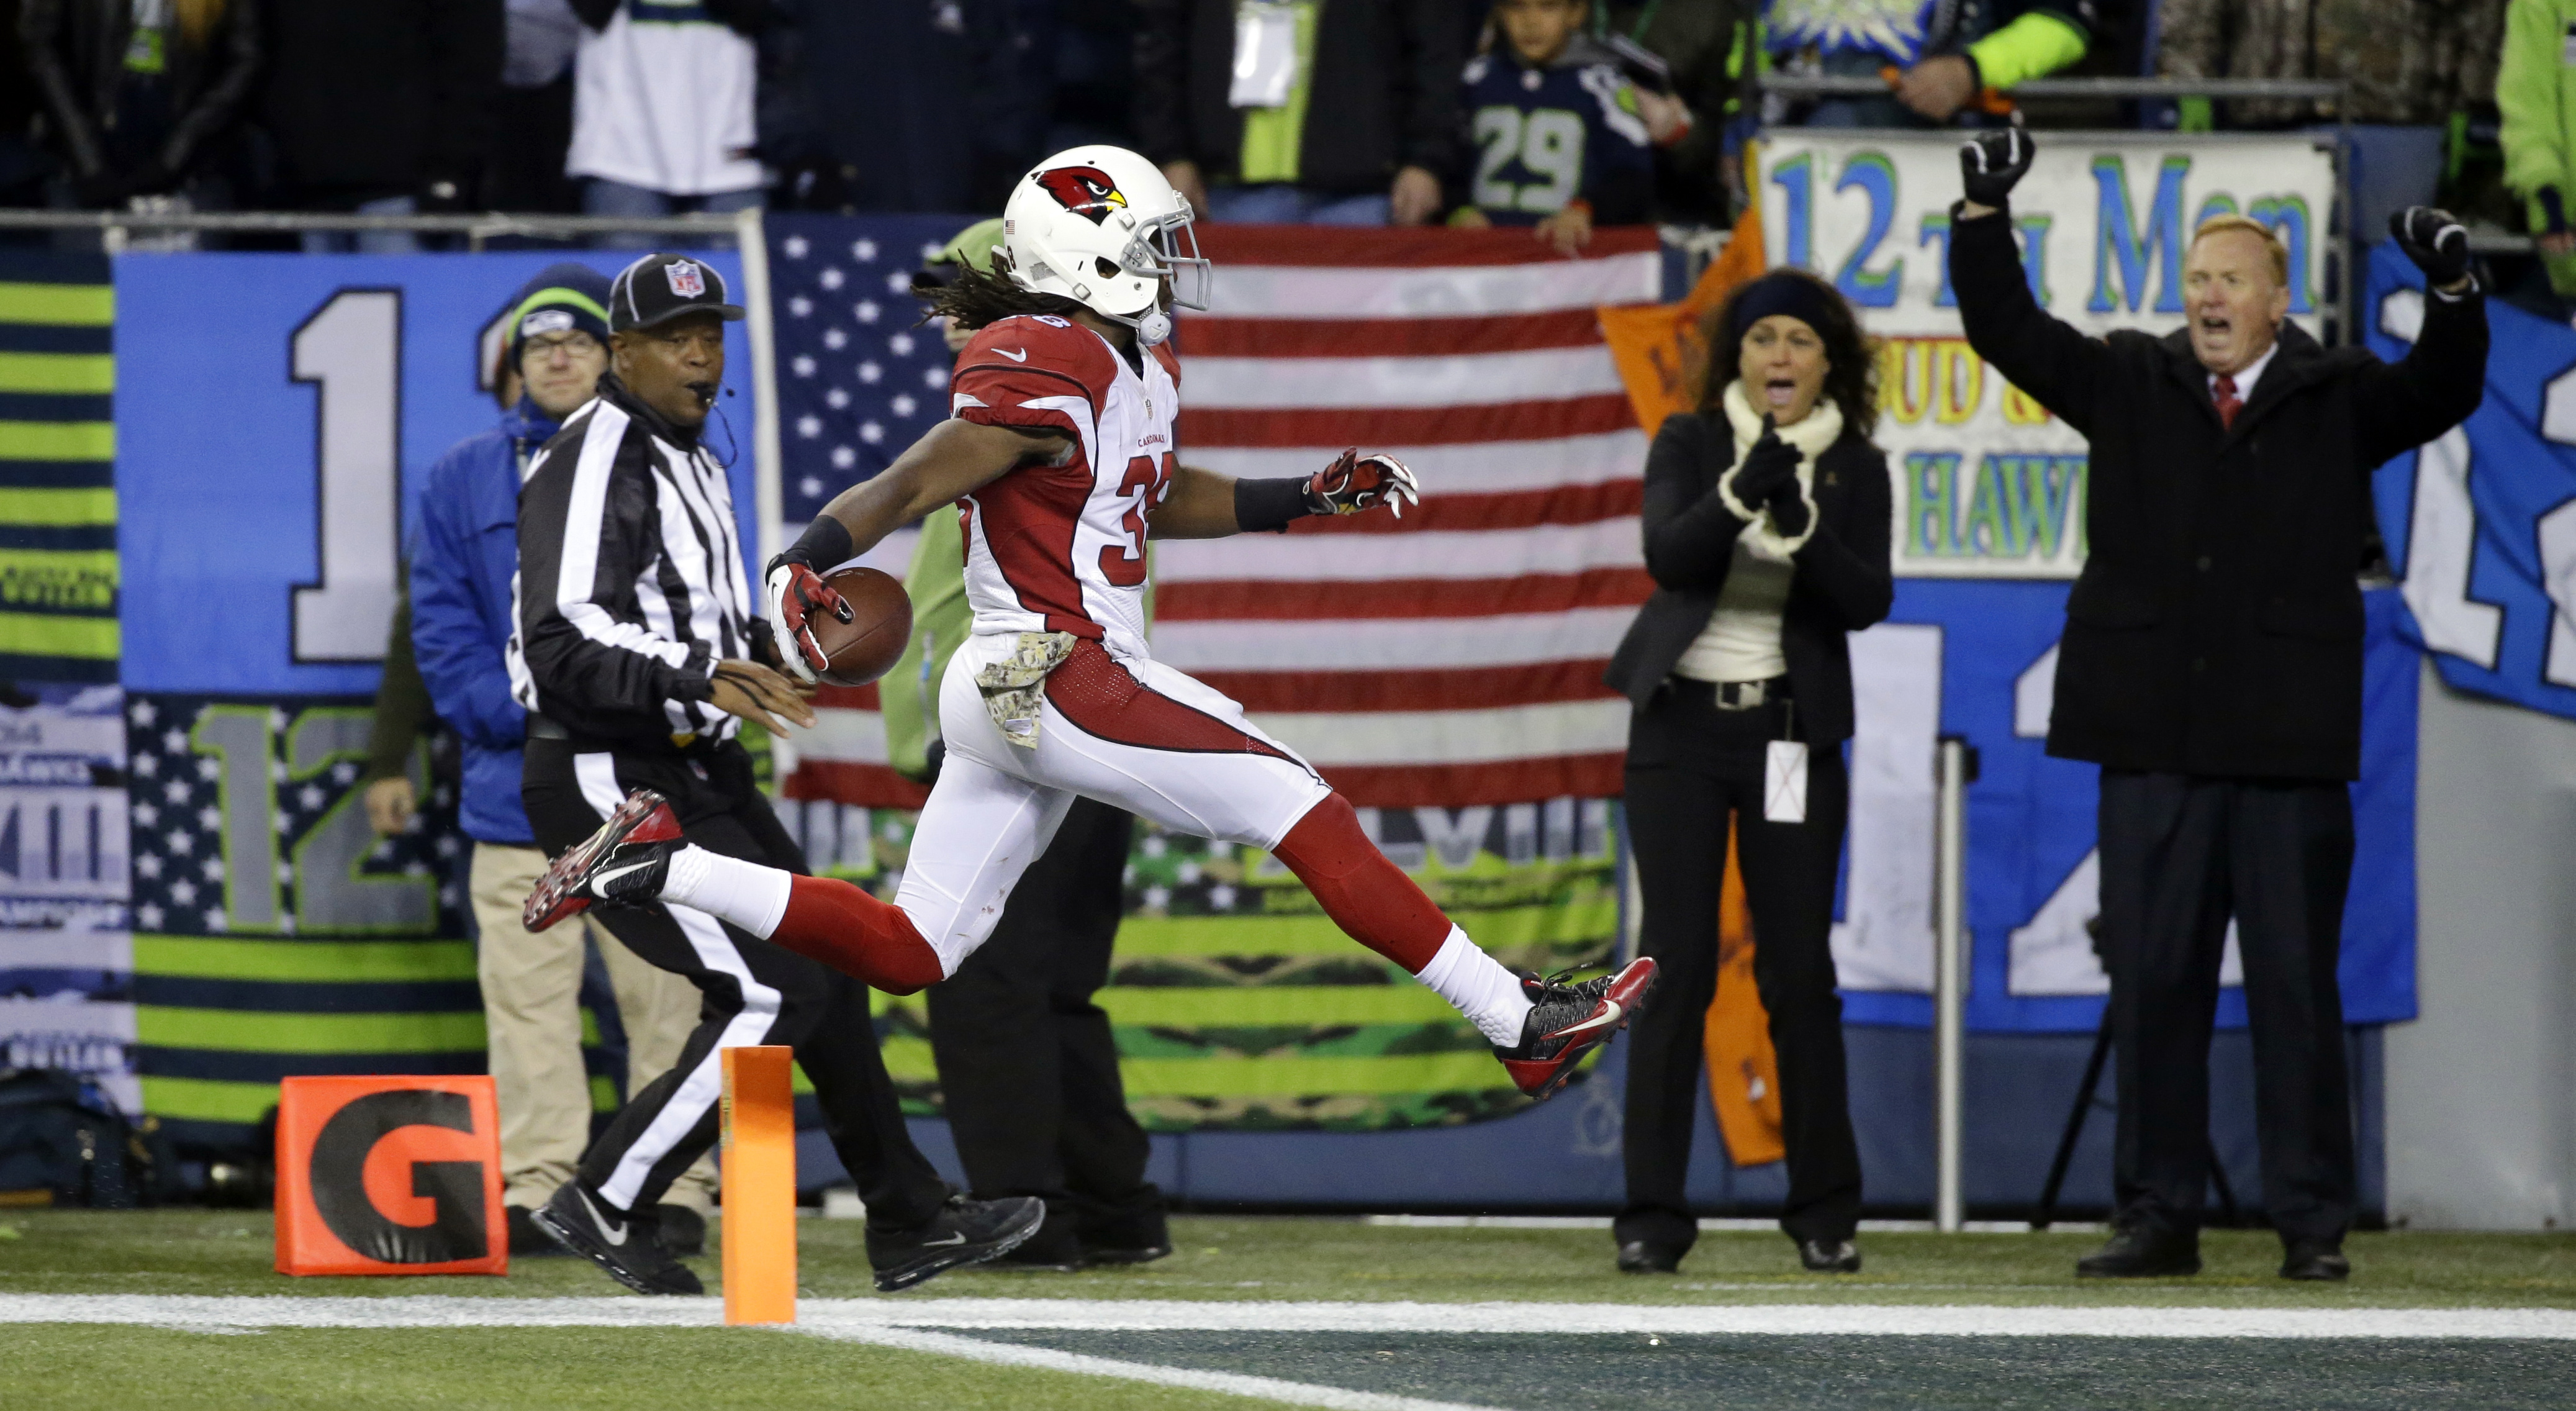 Arizona Cardinals running back Andre Ellington leaps into the end zone for a touchdown against the Seattle Seahawks during the second half of an NFL football game, Sunday, Nov. 15, 2015, in Seattle. (AP Photo/Elaine Thompson)